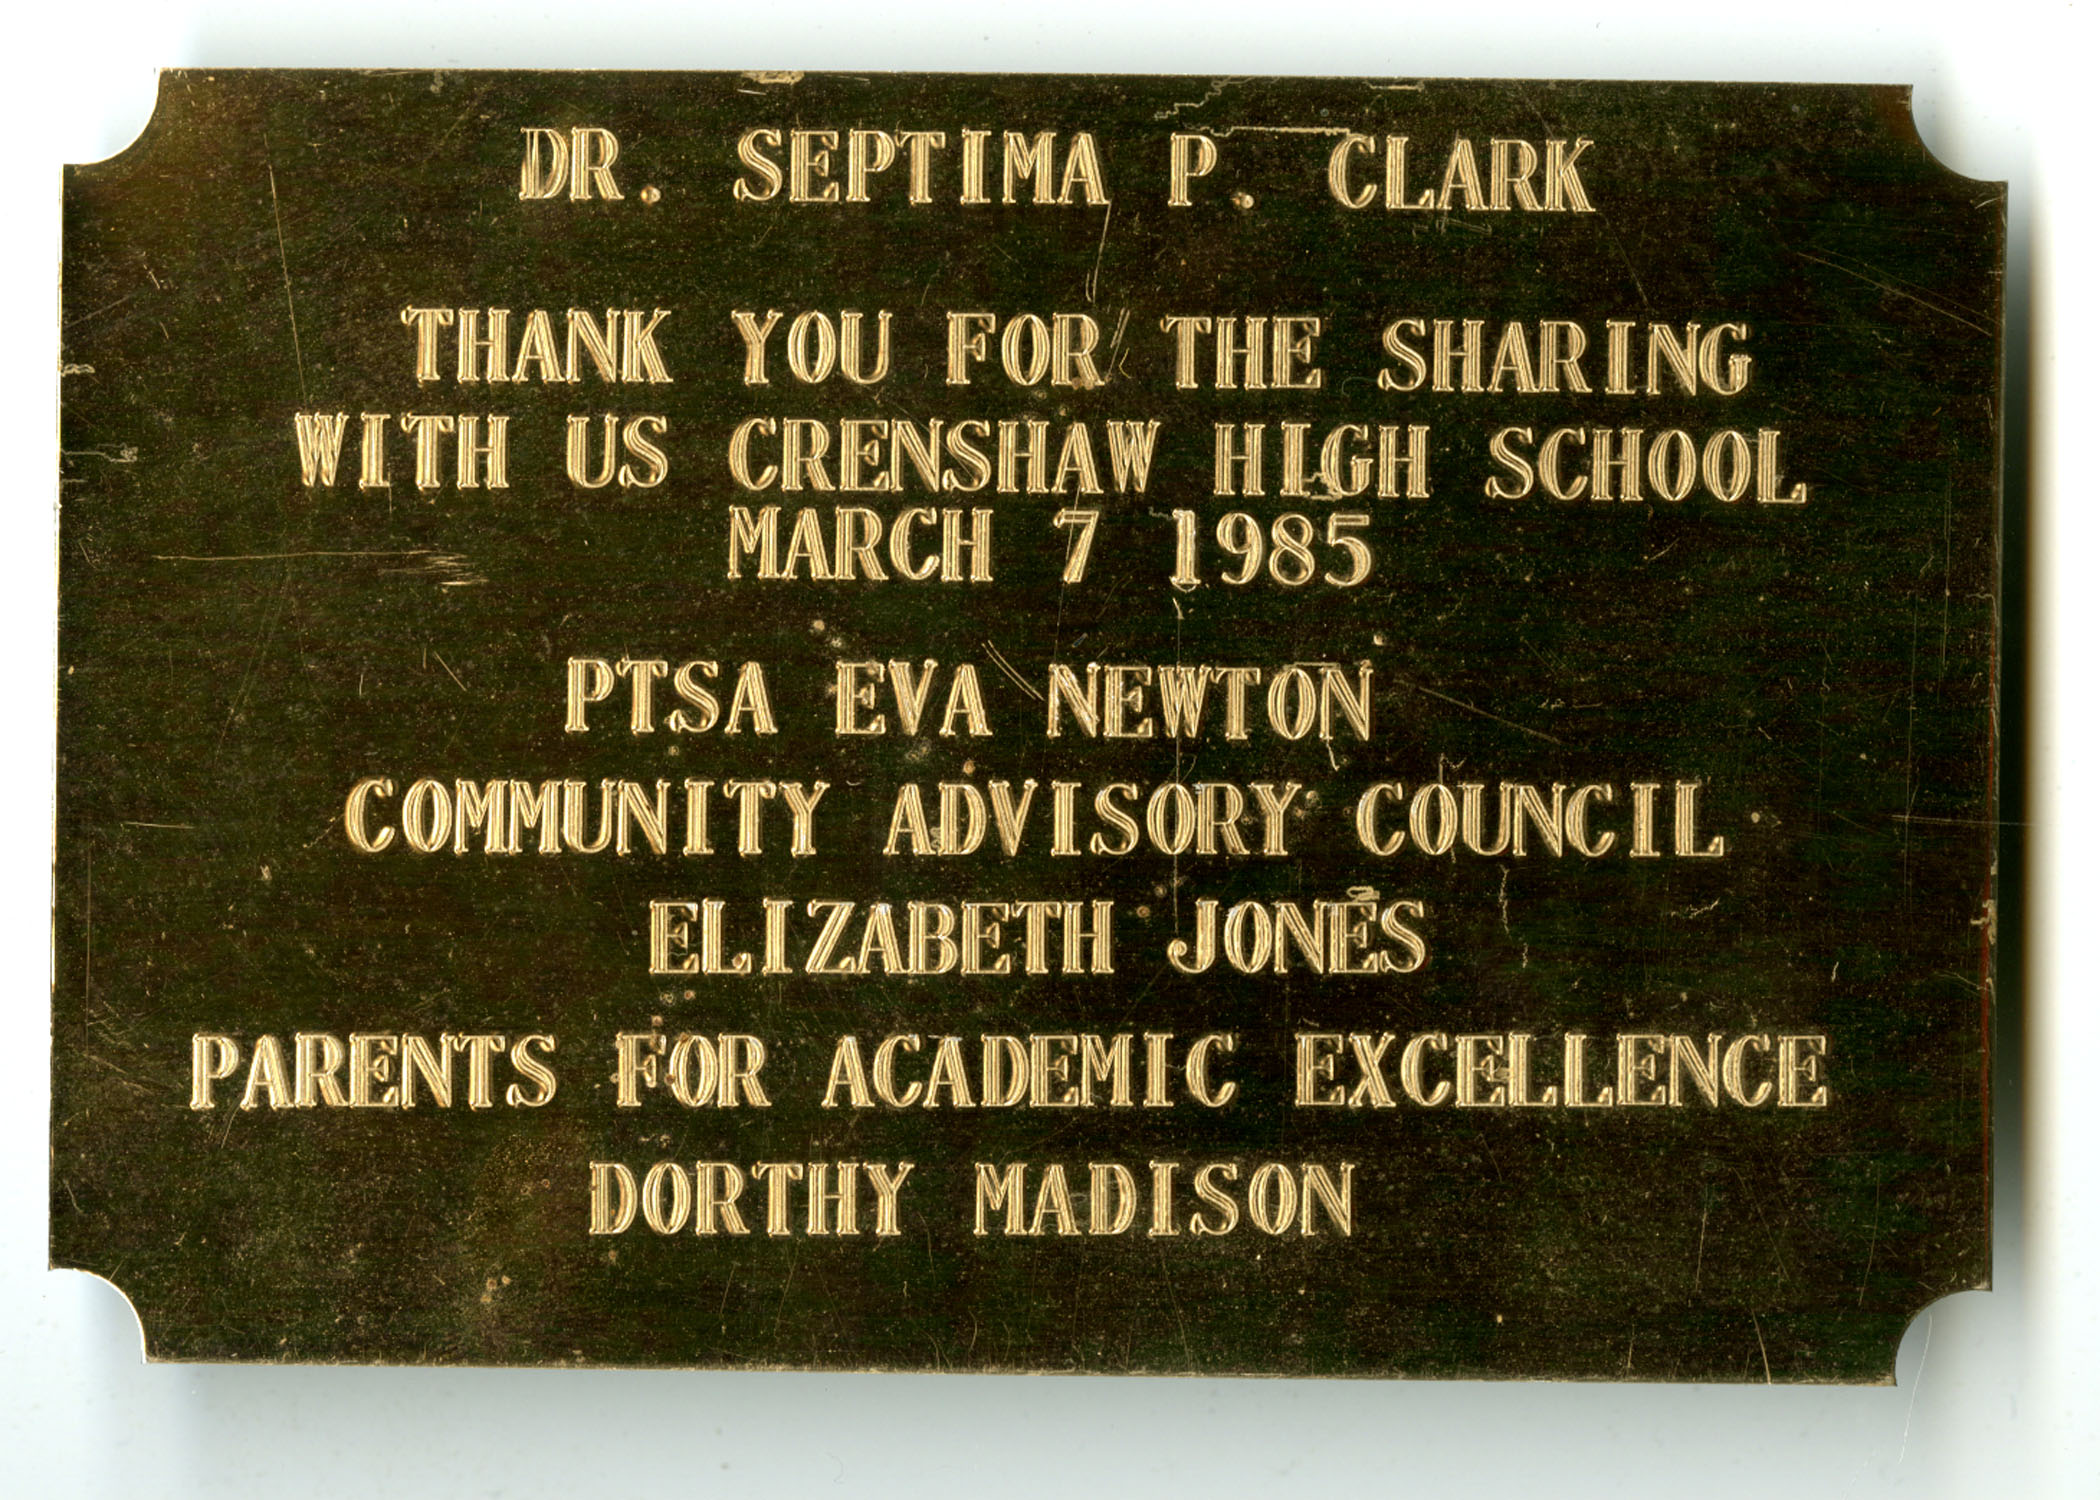 Plaque, March 7, 1985